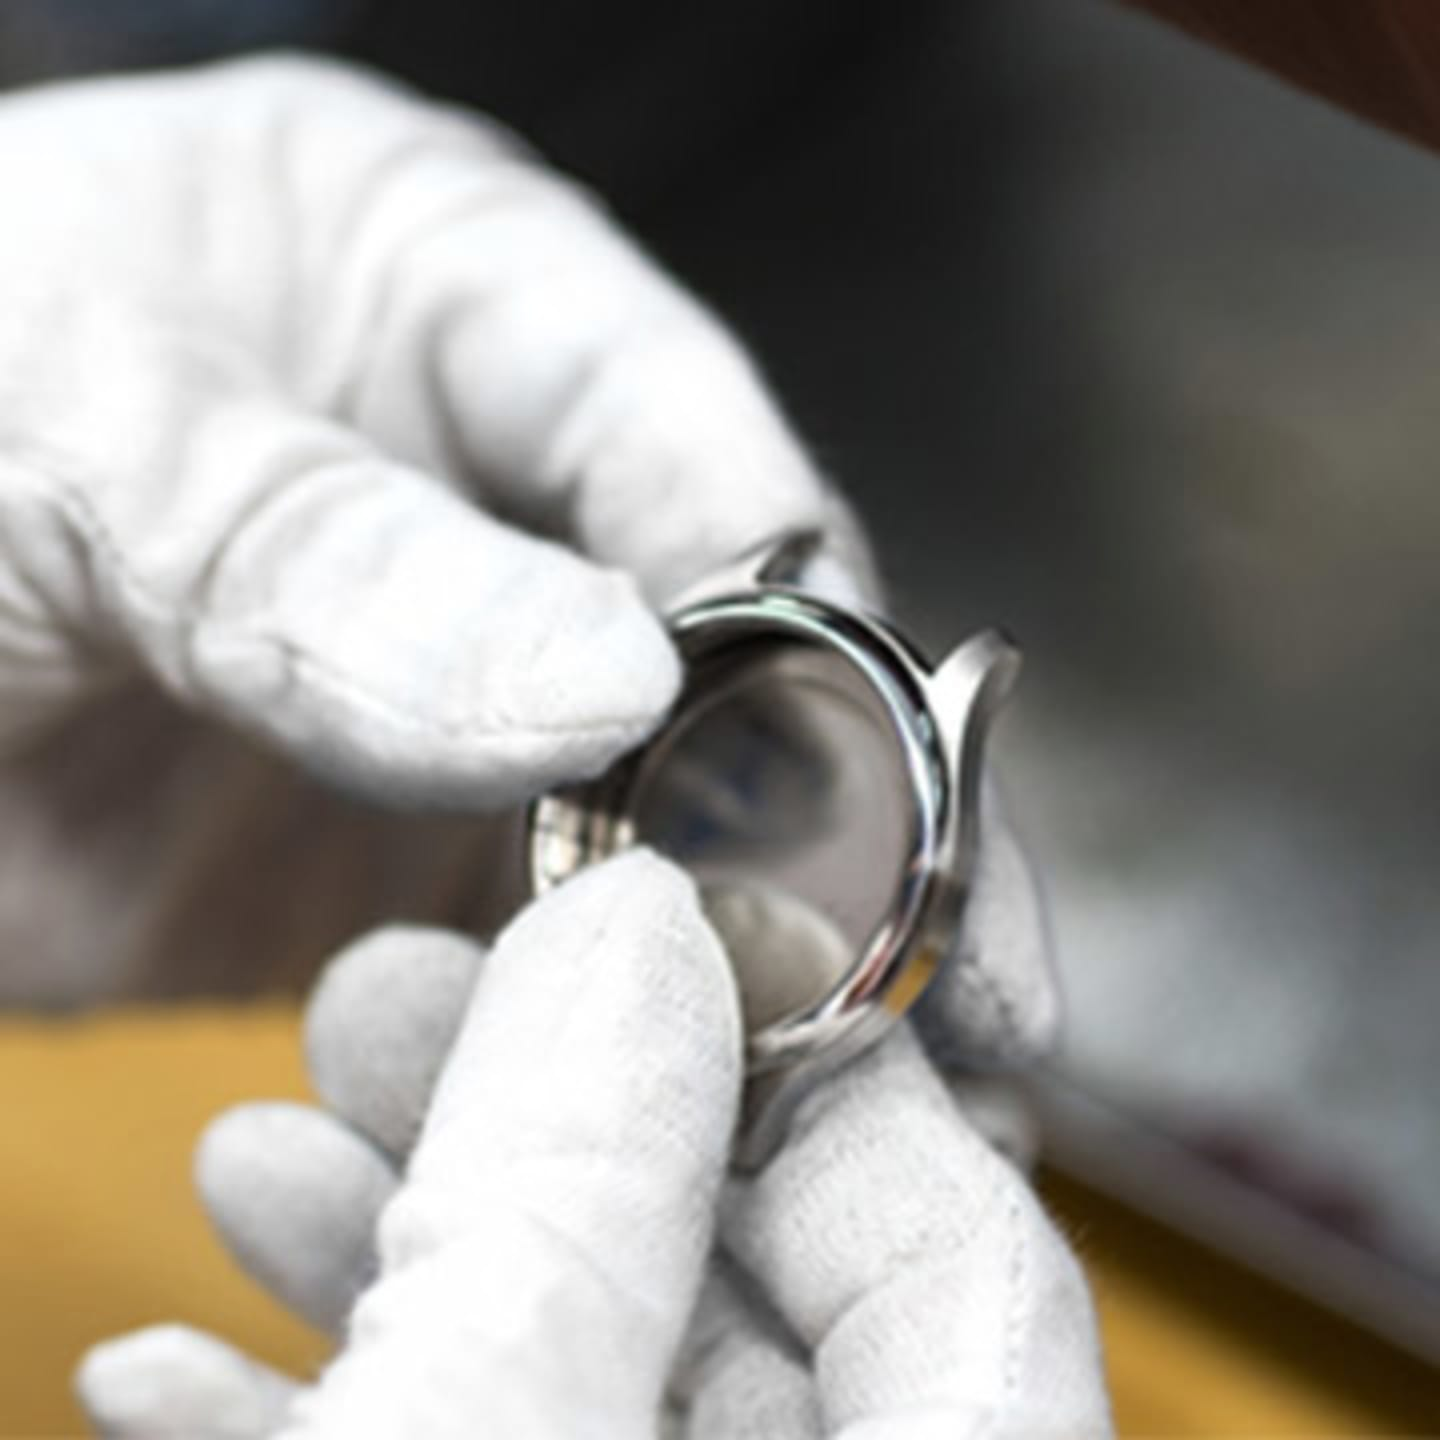 Watch maker with white gloves holding a silver watch body in their hands